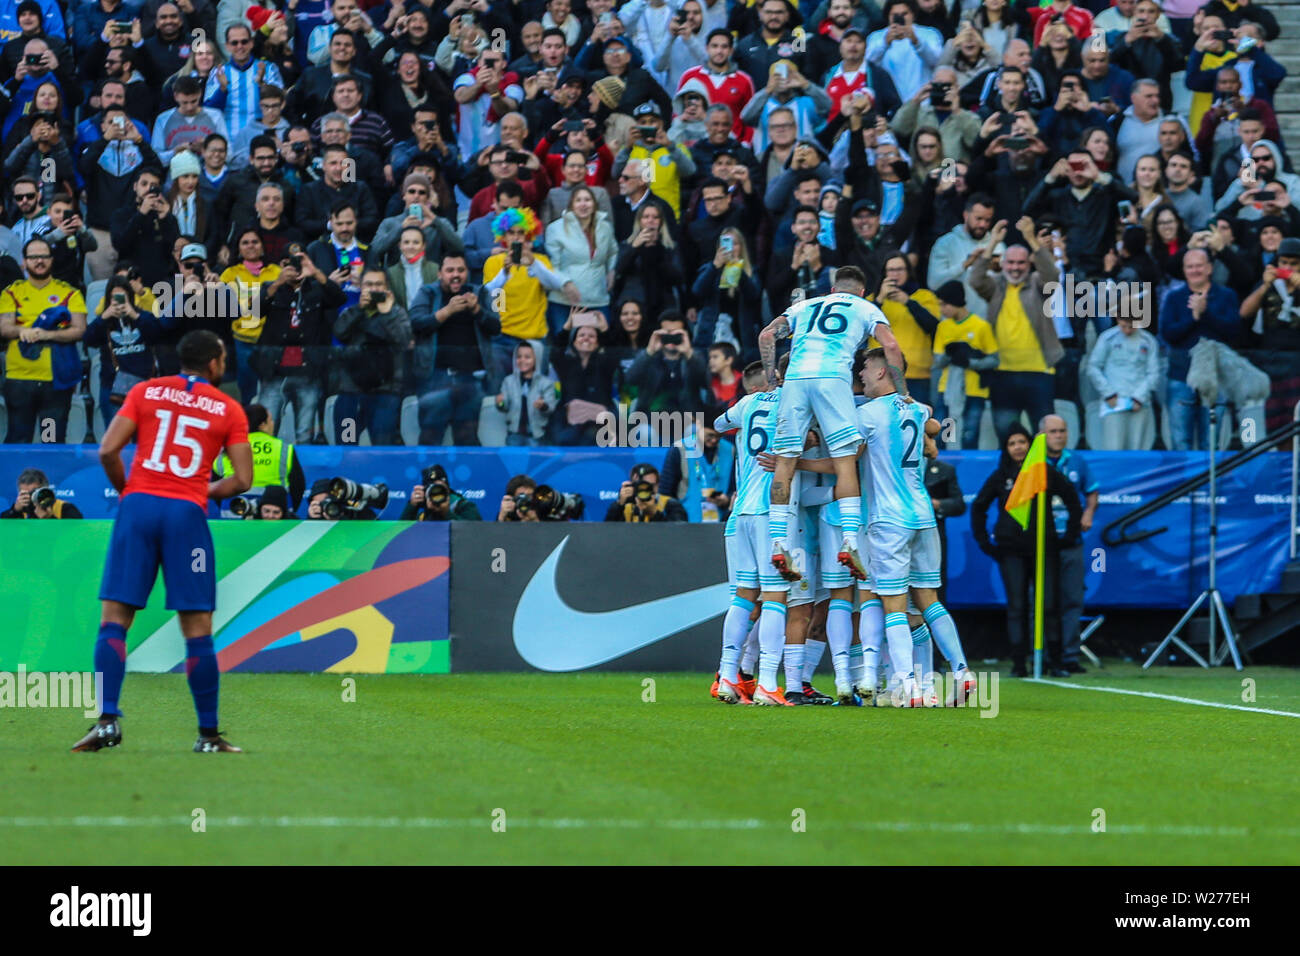 Brazil. 6th July, 2019. Aguero celebrate goal in the Game of the match between Argentina X Chile valid for third place dispute of Copa America 2019, in the Arena Corinthians, in São Paulo, this Saturday (06). Photo: Geraldo Bubniak Credit: Geraldo Bubniak/ZUMA Wire/Alamy Live News Stock Photo